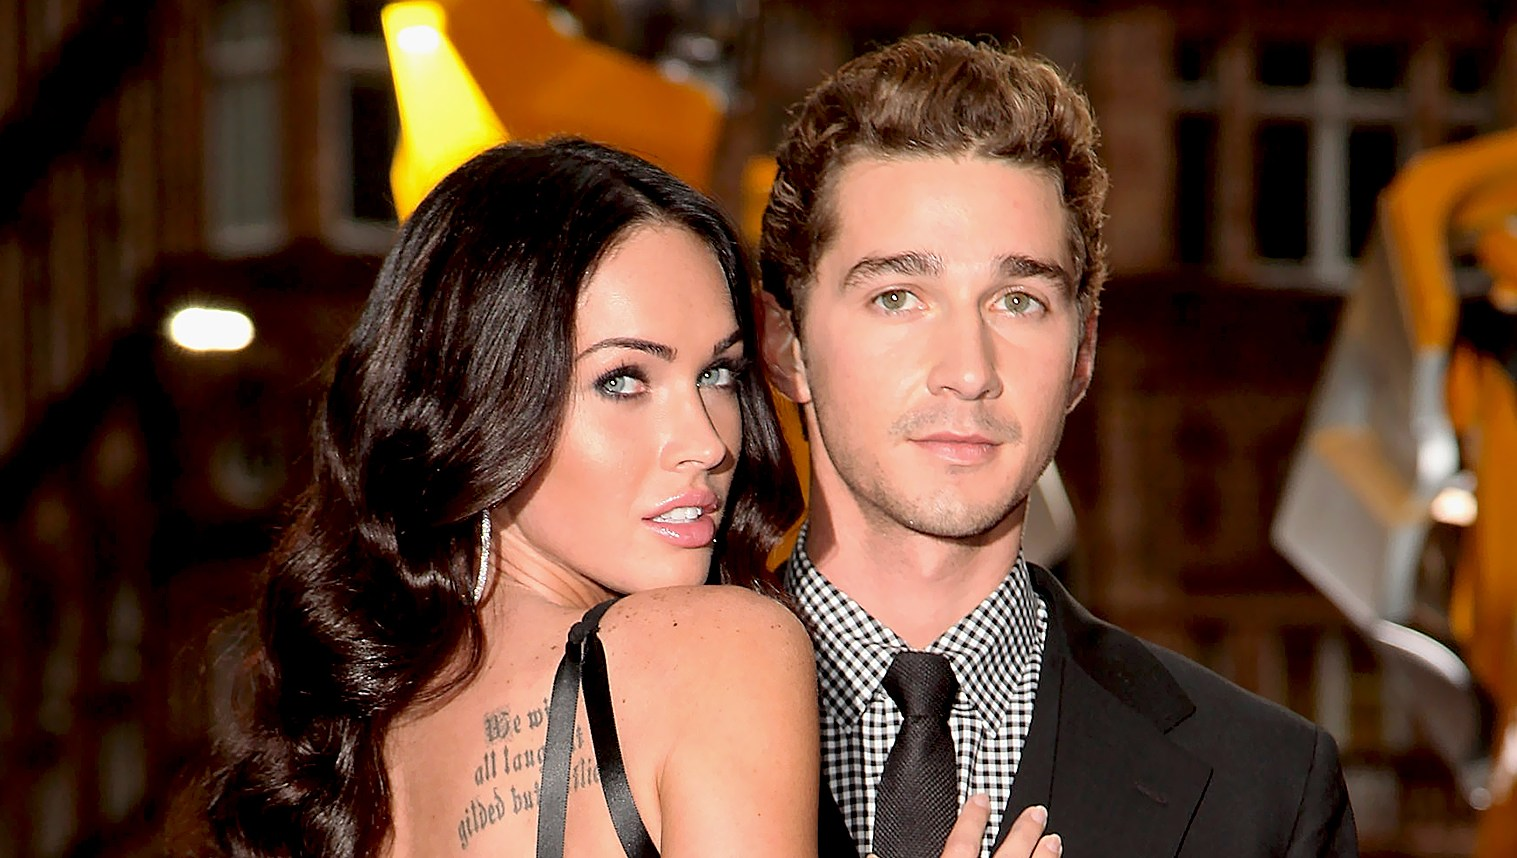 Megan-Fox-and-Shia-LaBeouf-romance